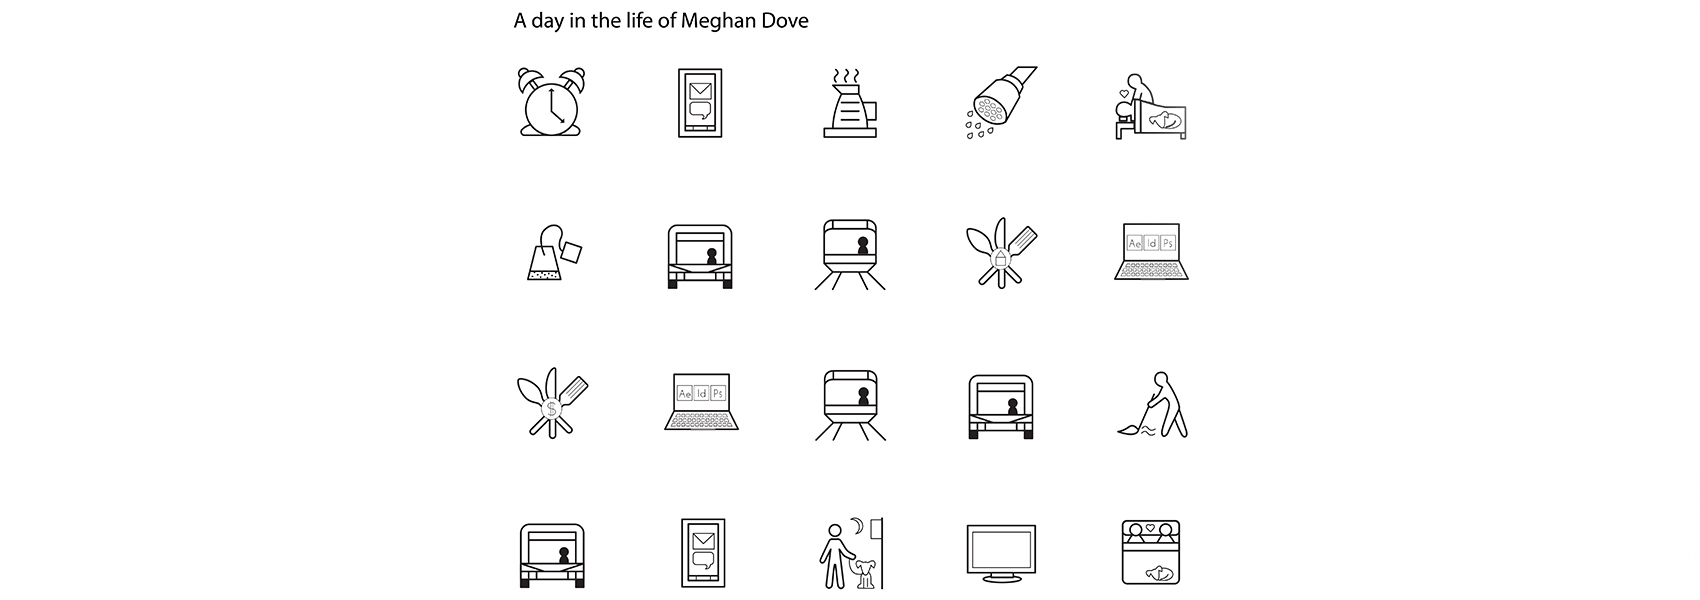 A page of icons designed by Meghan Dove